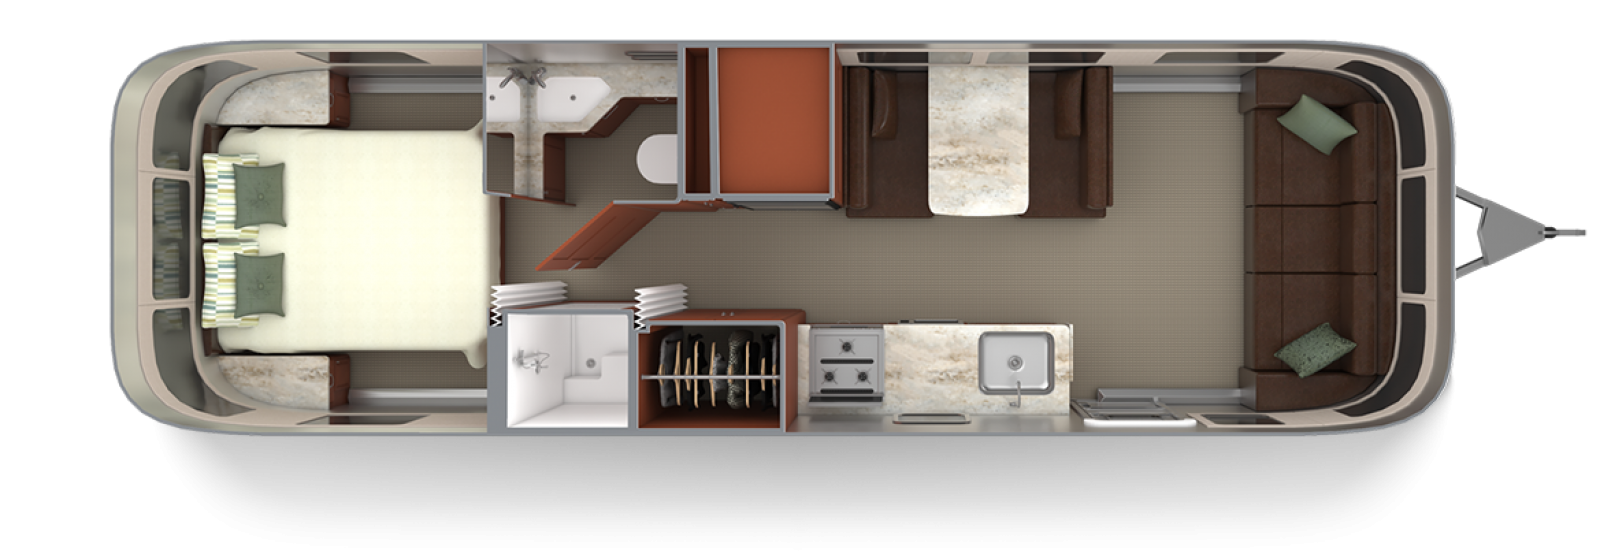 Airstream-Classic-30RB-Mocha-Cherry-with-Chestnut-Floor-Plan